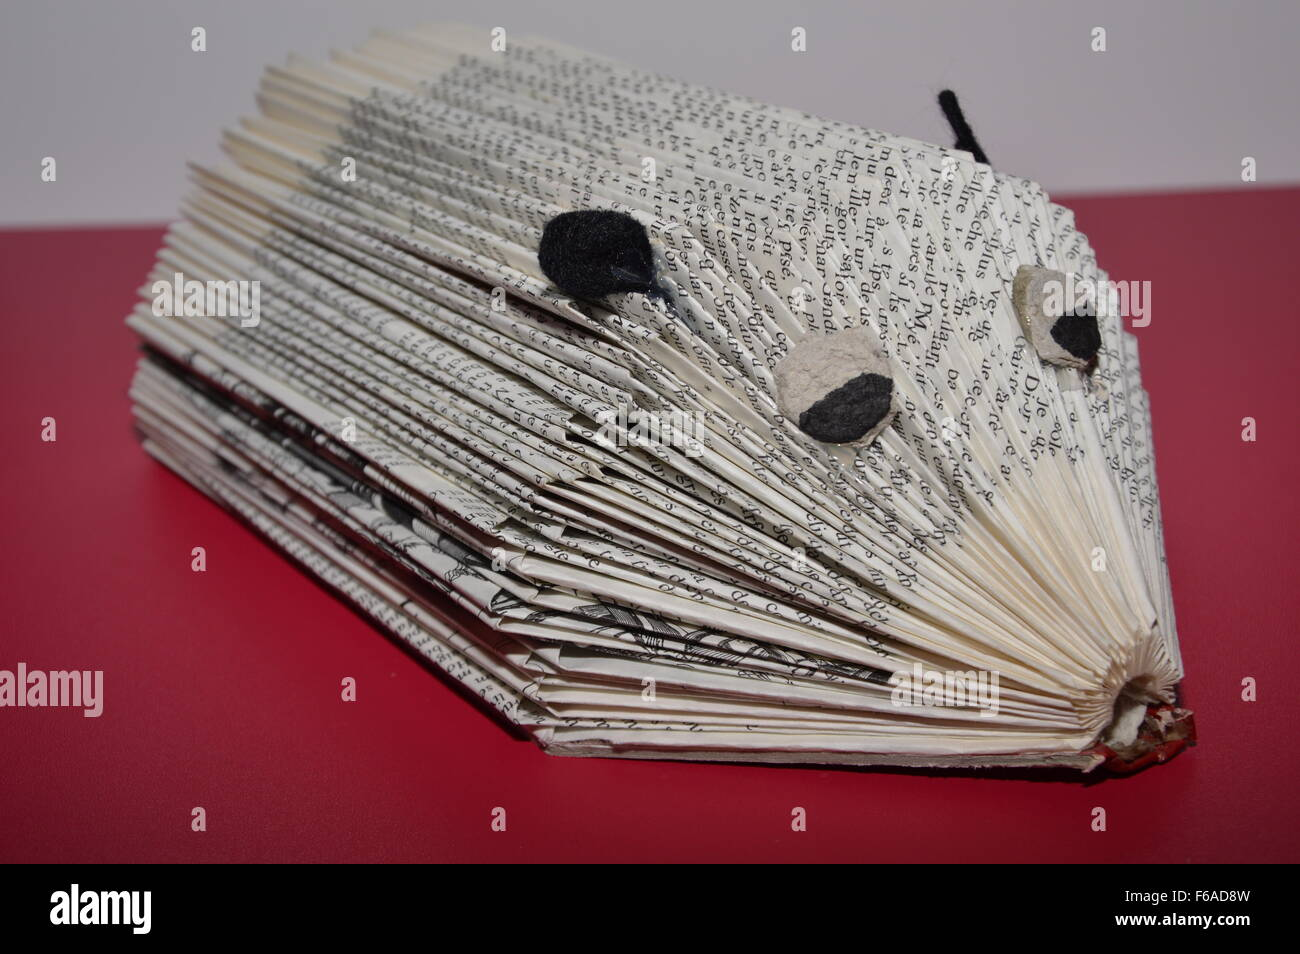 Transformation,a Book in a Hedgehog - Stock Image